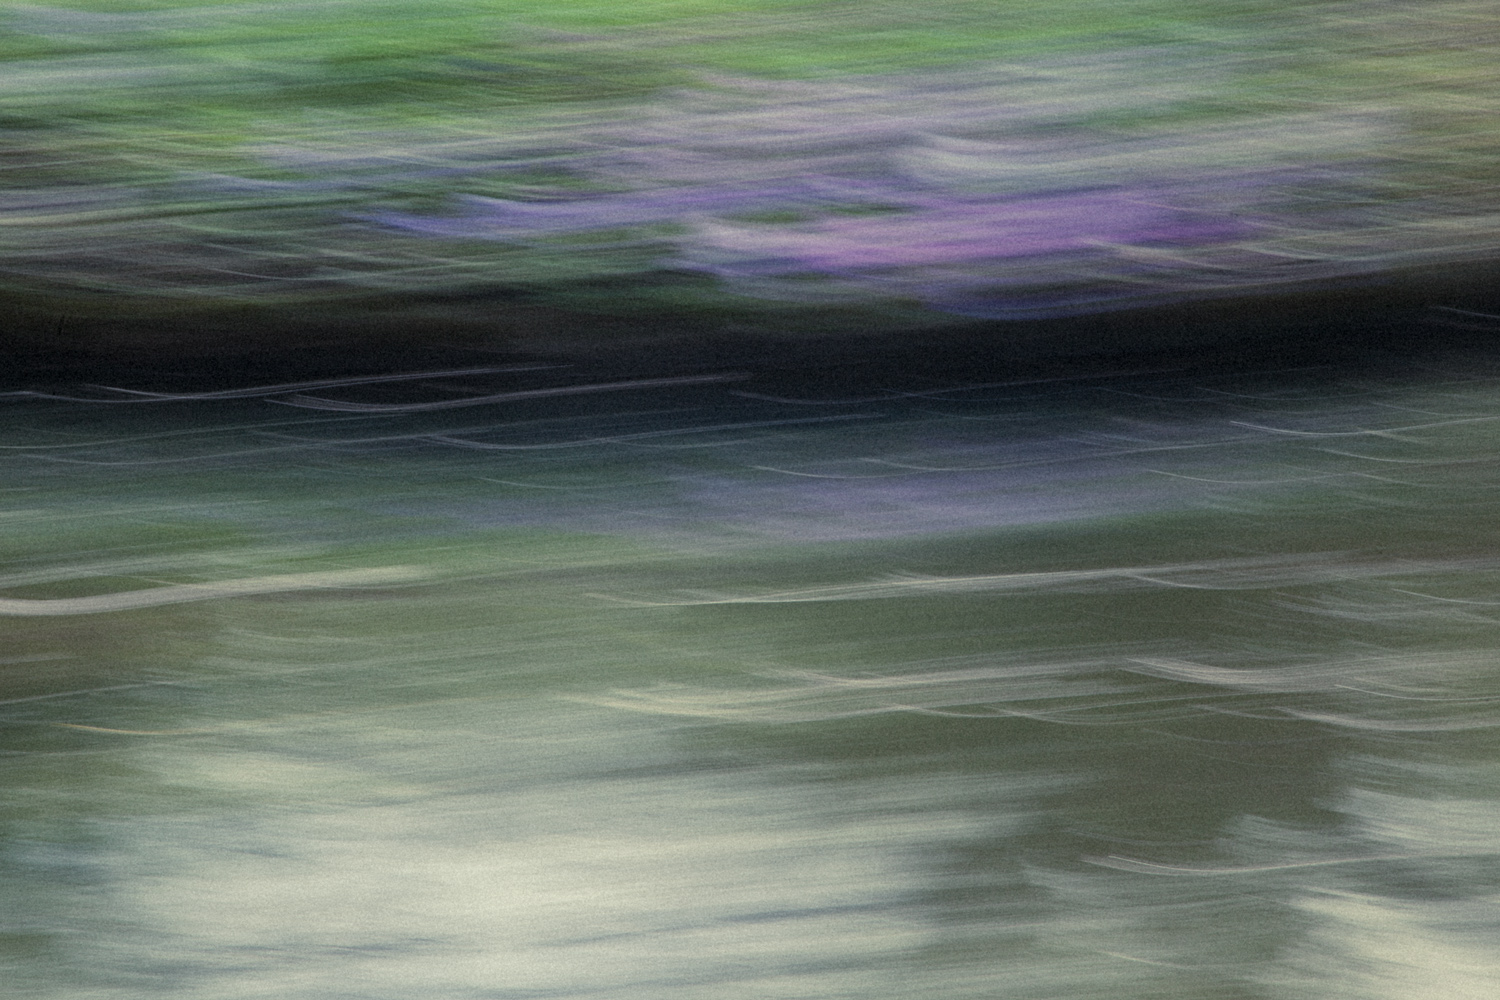 Image: This image was created on a visit to Monet's home in Giverny in France where he painted...